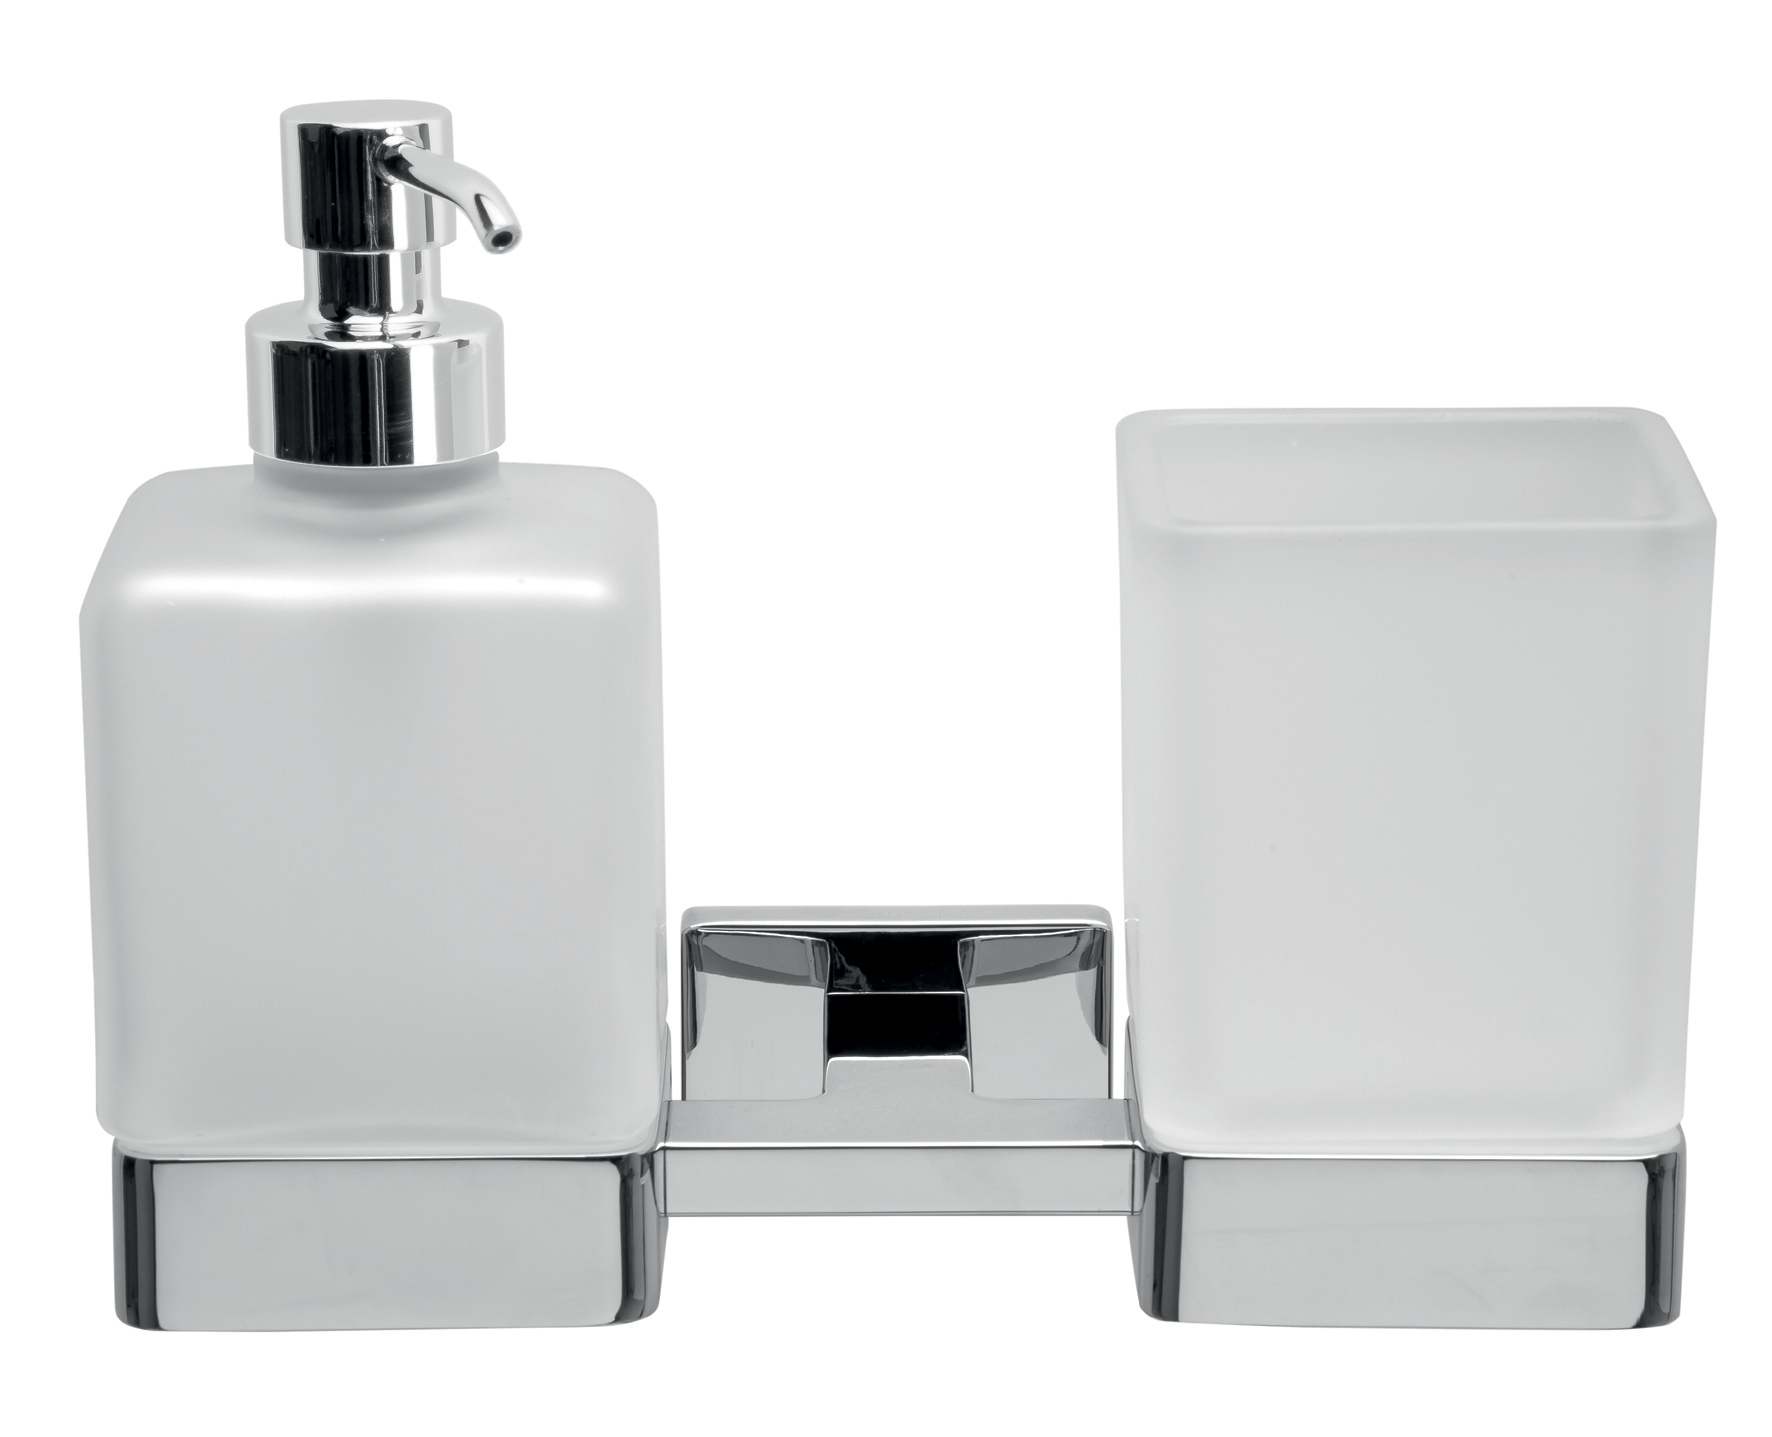 click on Double Tumbler & Soap Dispenser image to enlarge